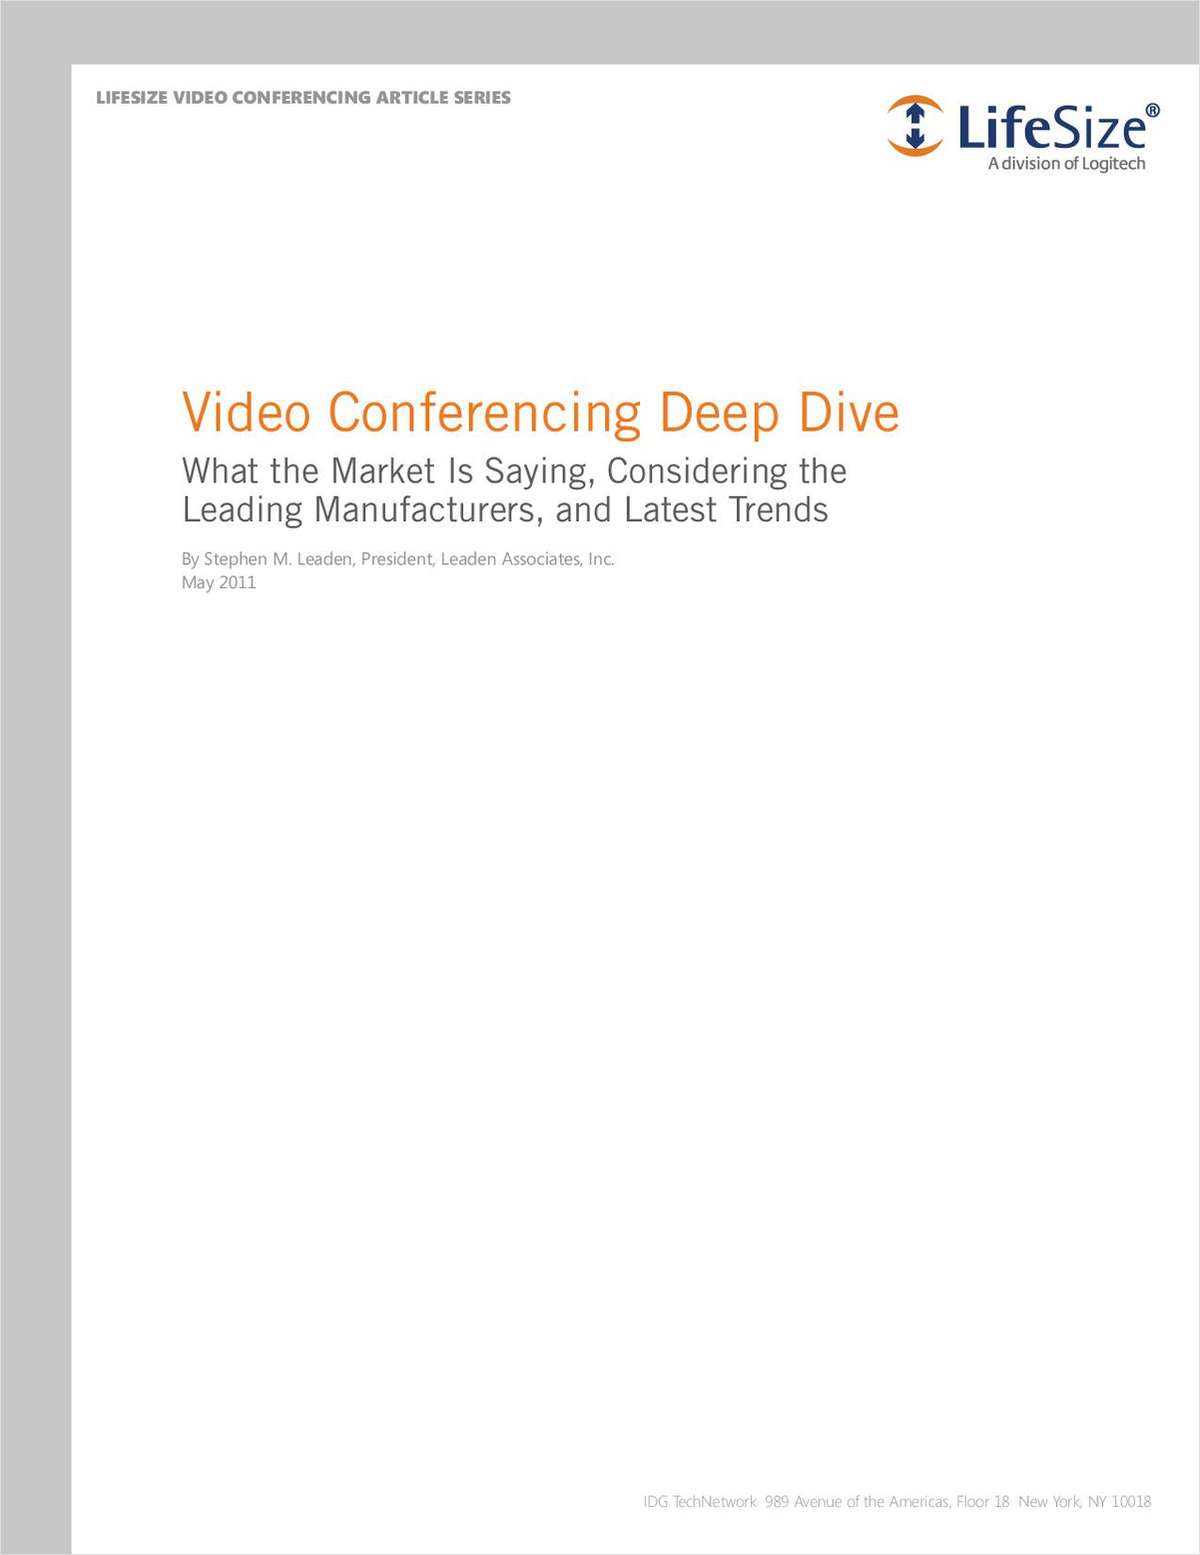 Video Conferencing Deep Dive